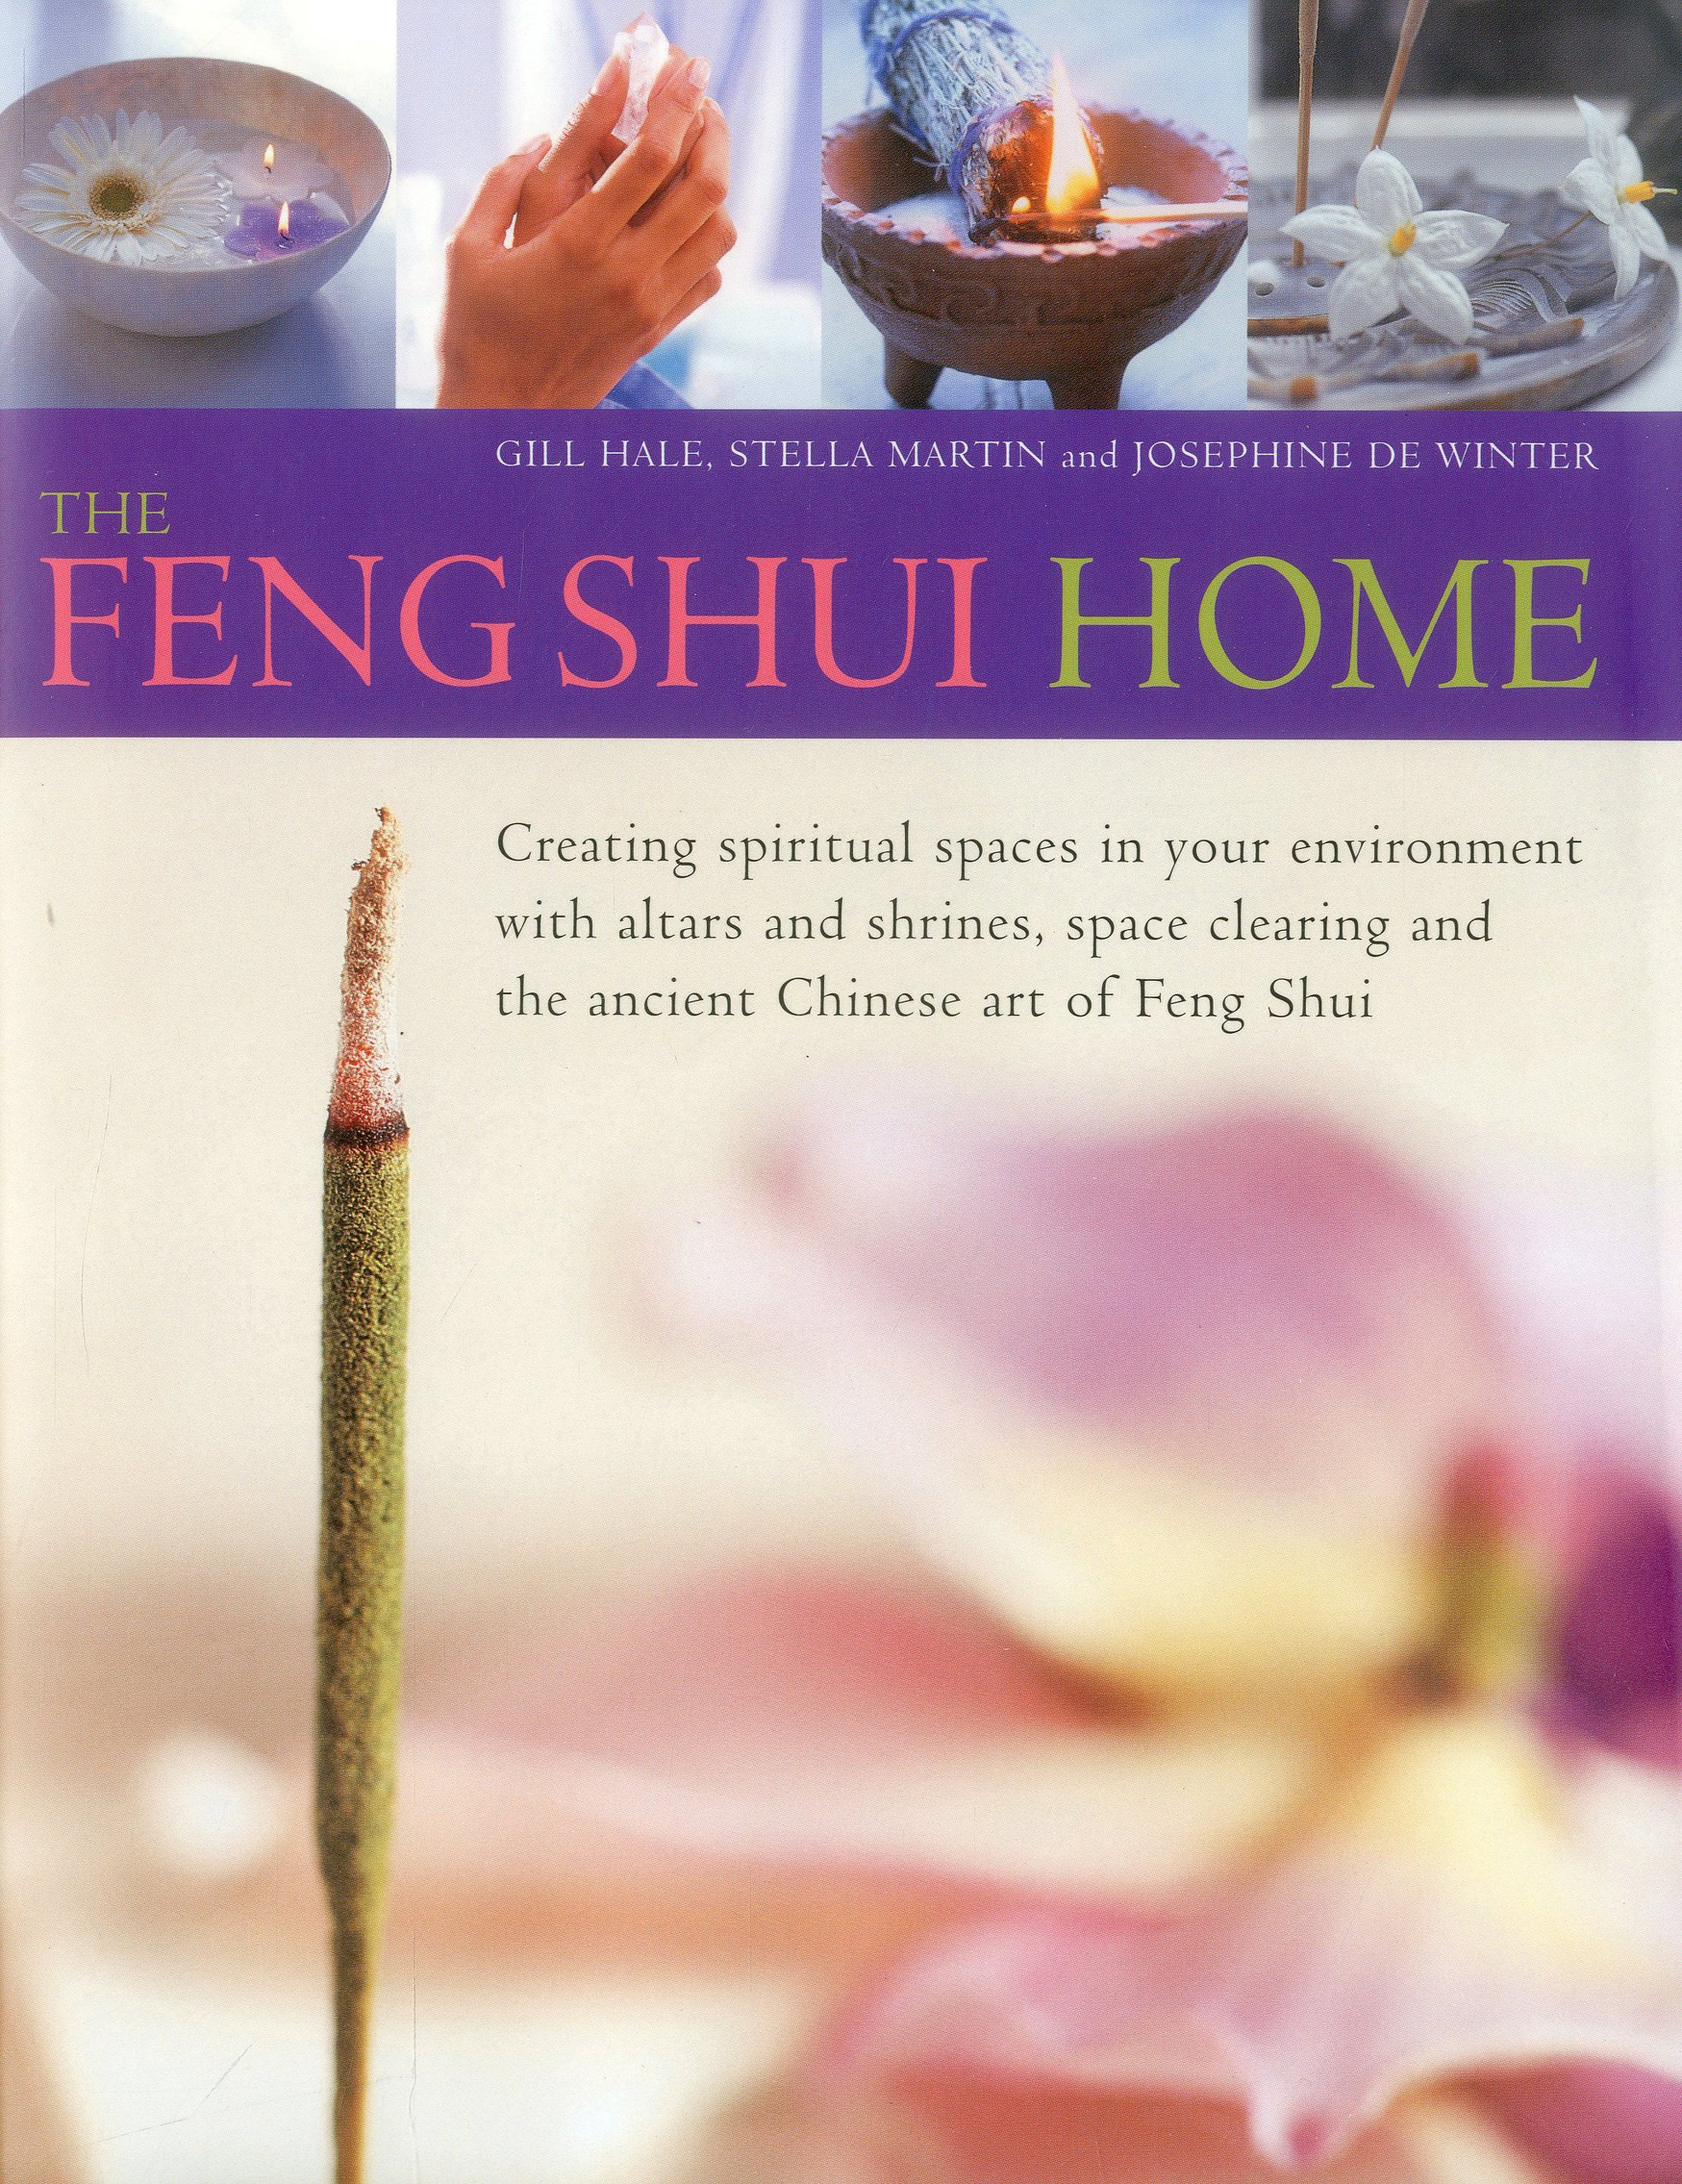 Download The Feng Shui Home: Creating spiritual spaces in your environment with altars and shrines, space clearing and the ancient Chinese art of Feng Shui pdf